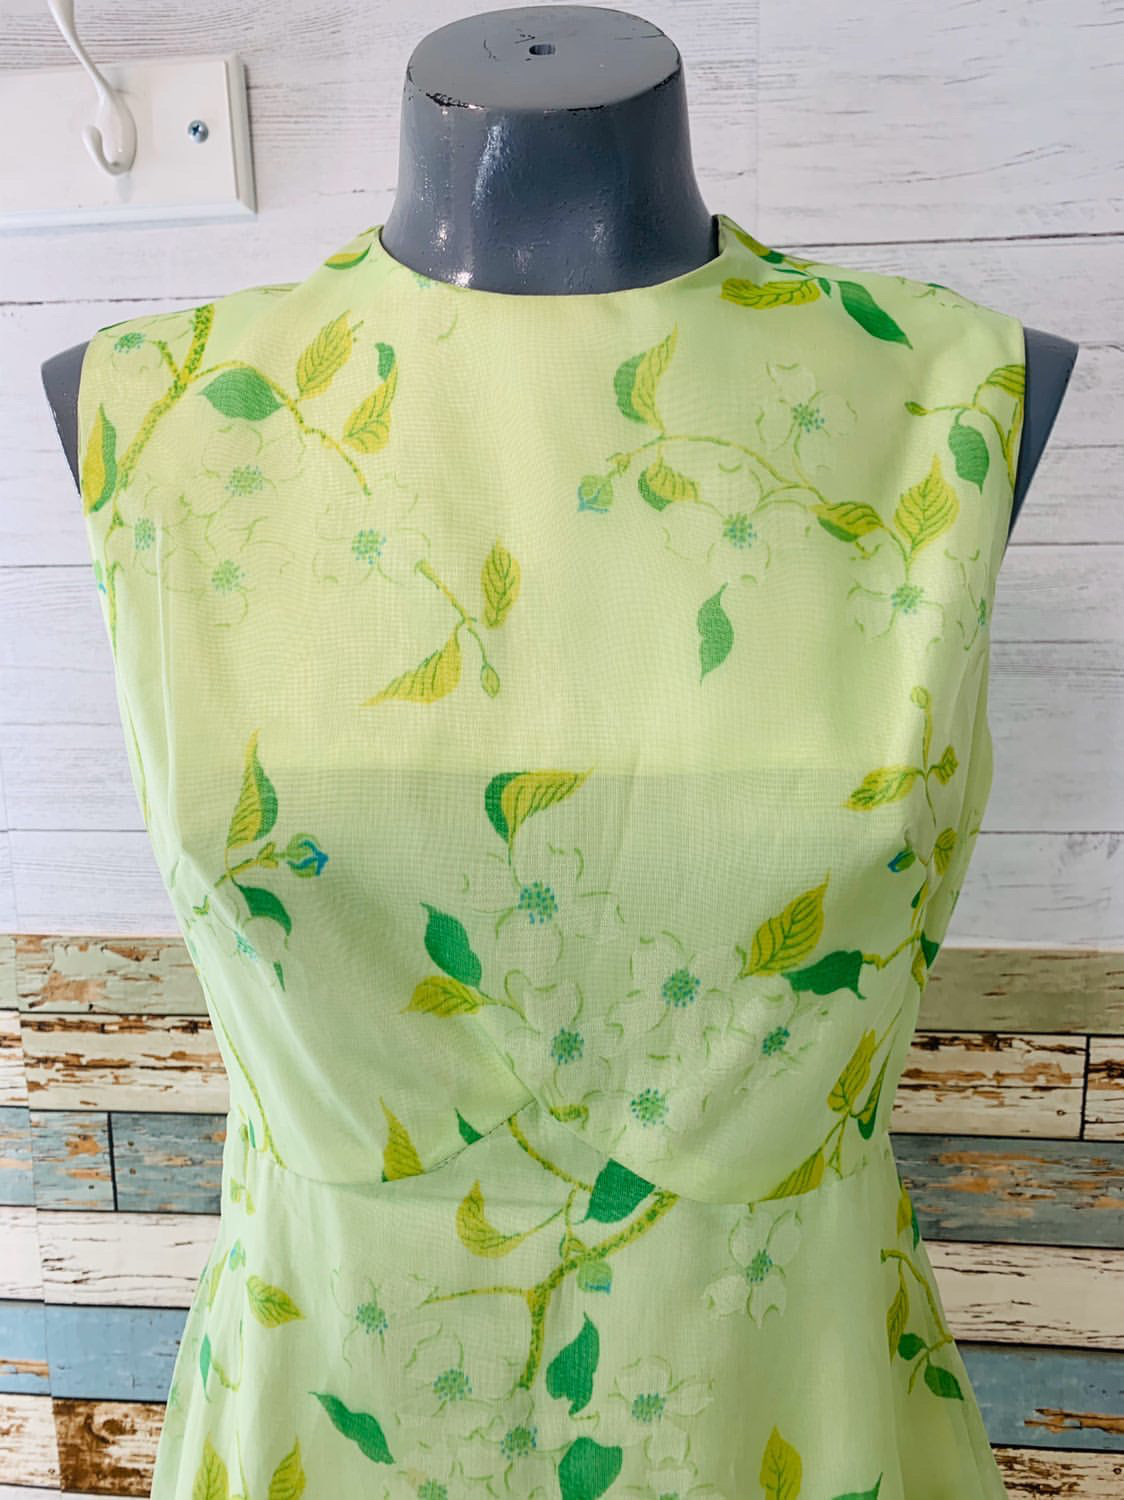 60's Sleevesless Empire Waist - Green Floral Print Dress - Hamlets Vintage